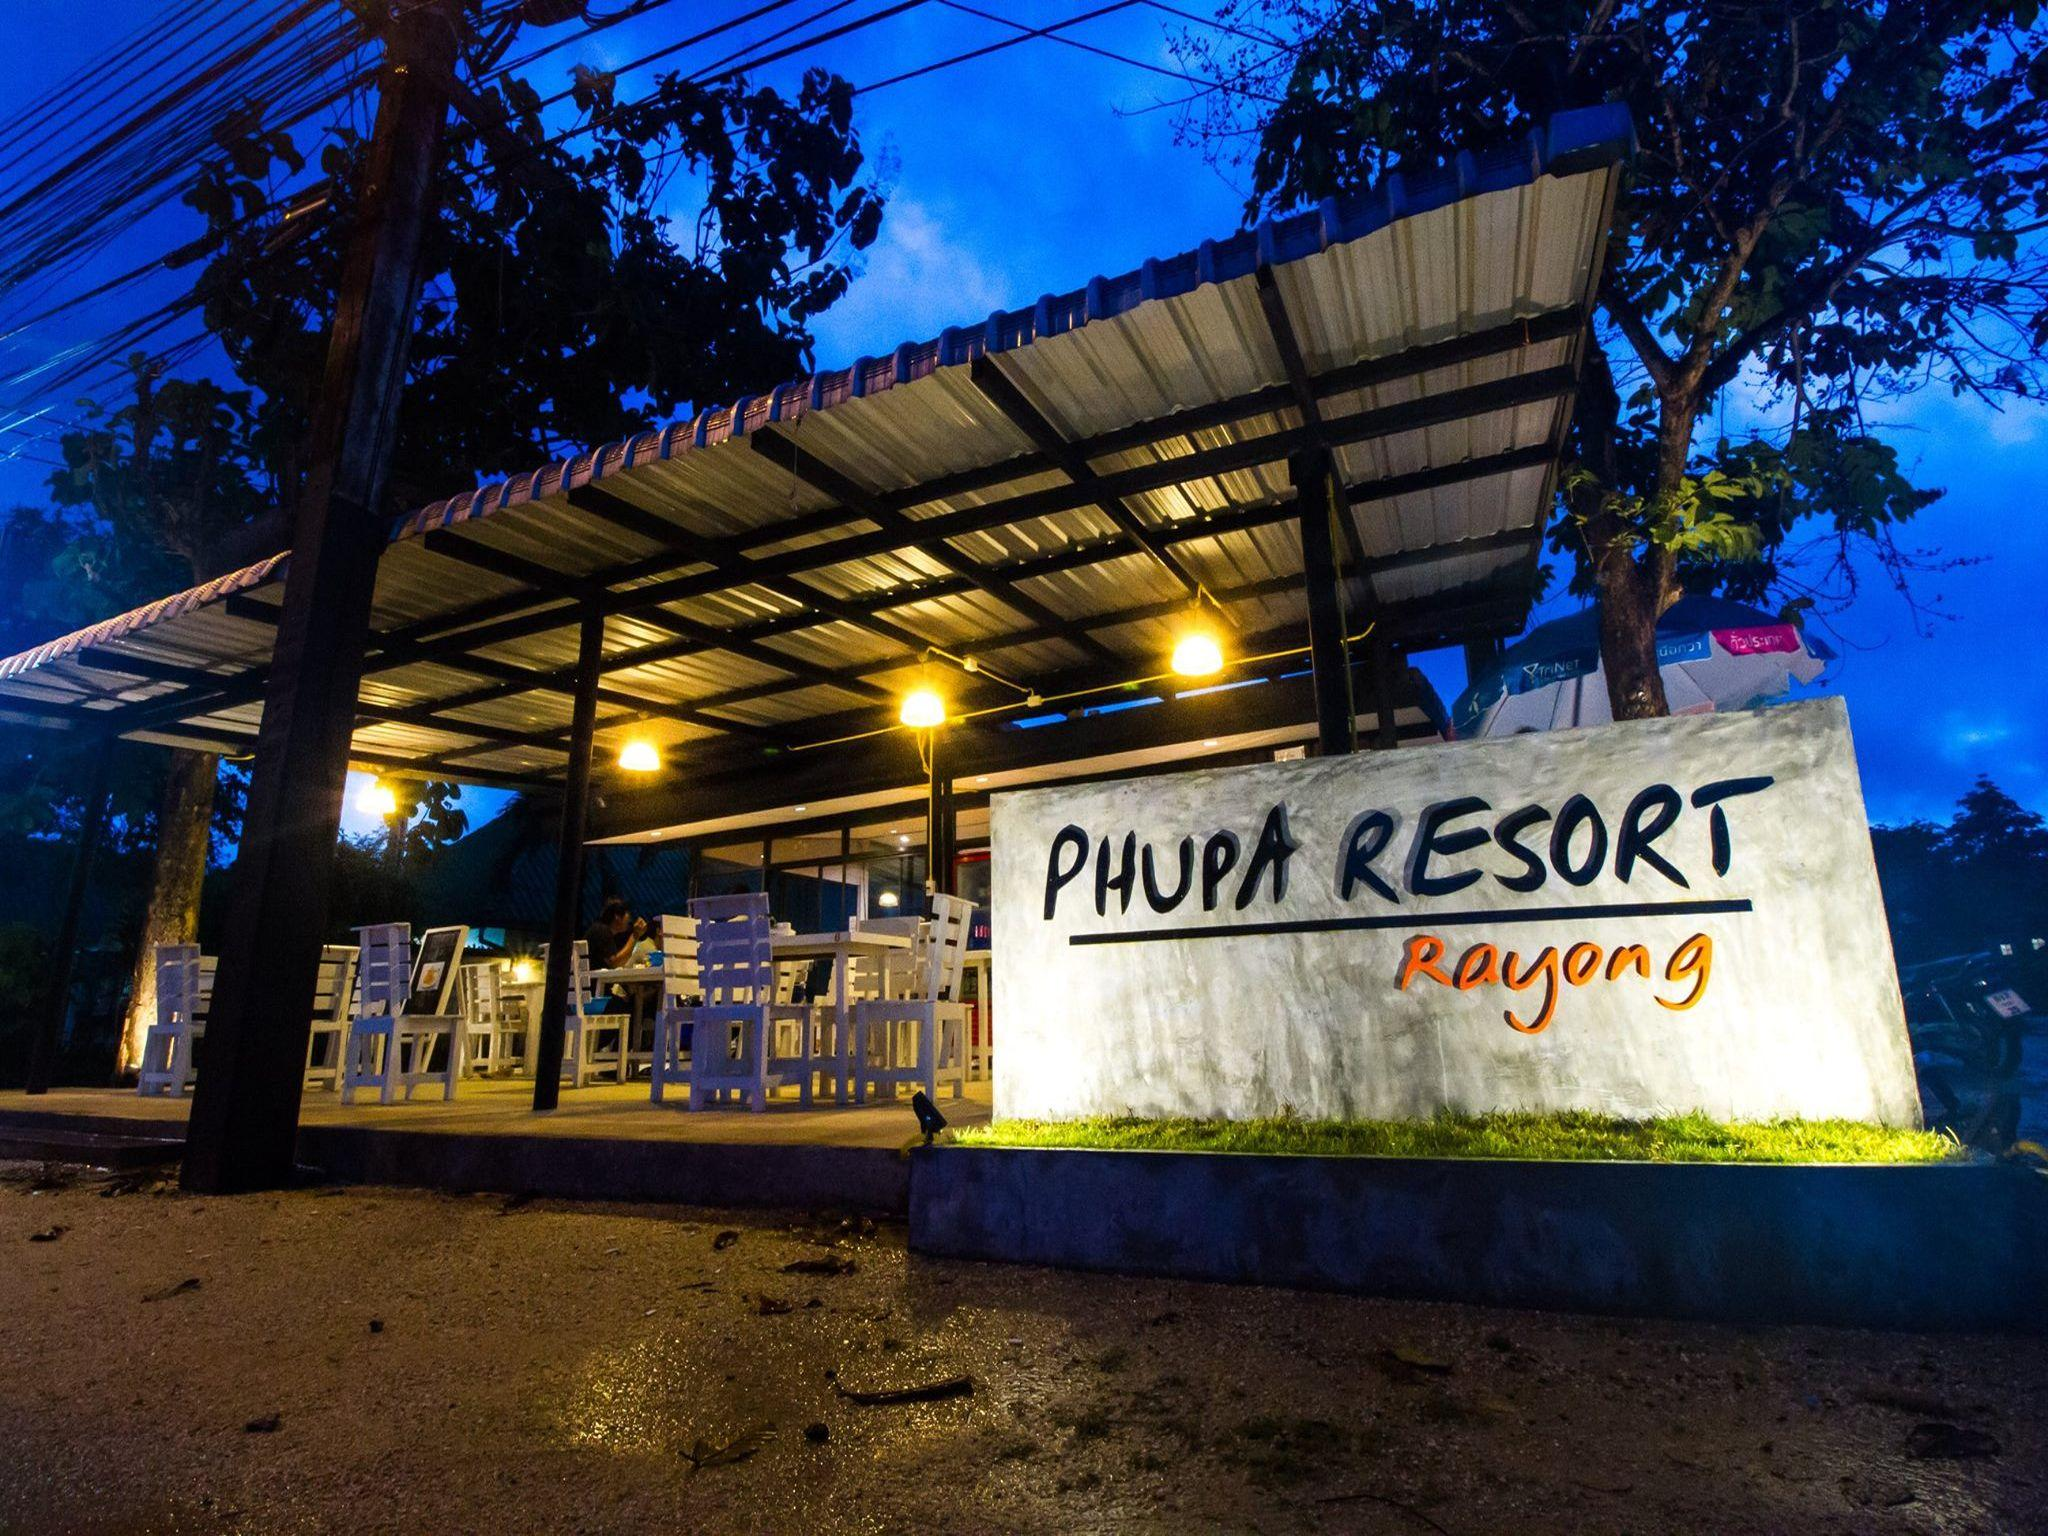 PHUPA BEACH Resort,PHUPA BEACH Resort